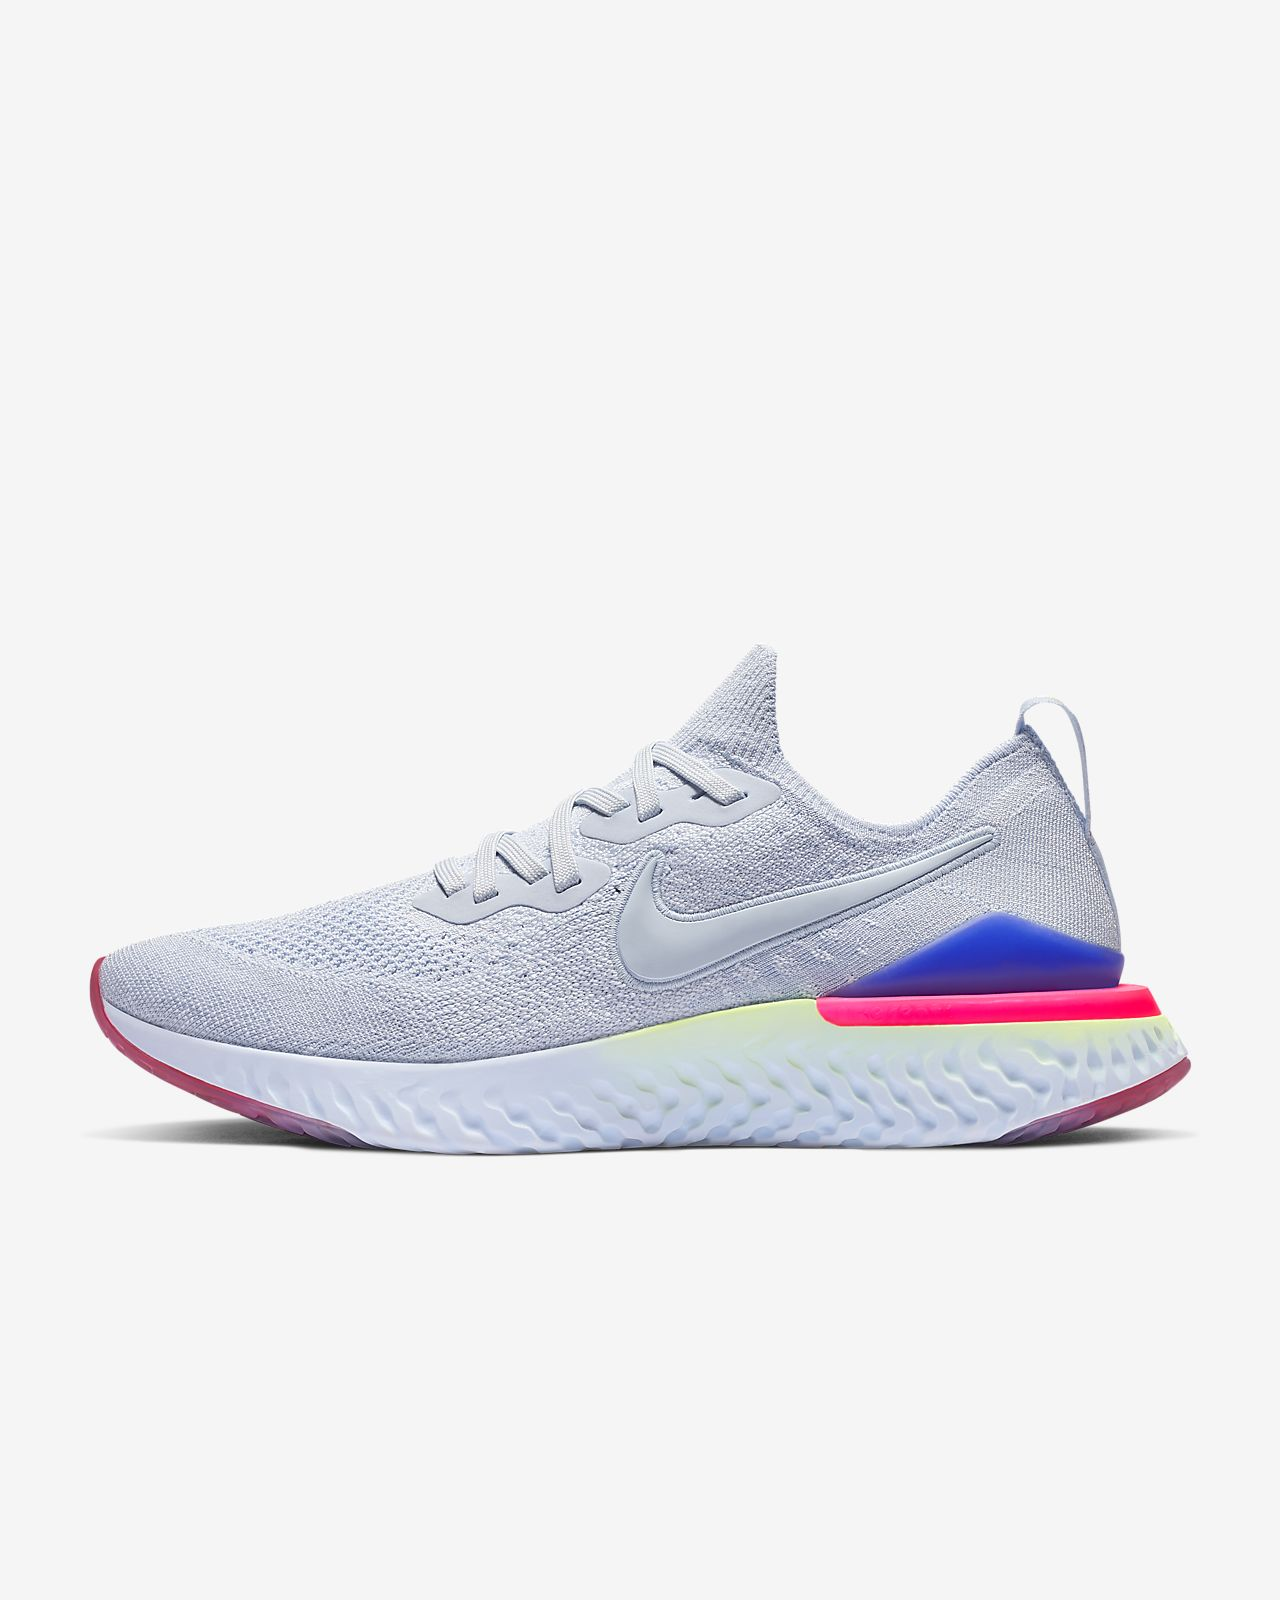 26beaf78be6f4 Nike Epic React Flyknit 2 Women s Running Shoe. Nike.com SG